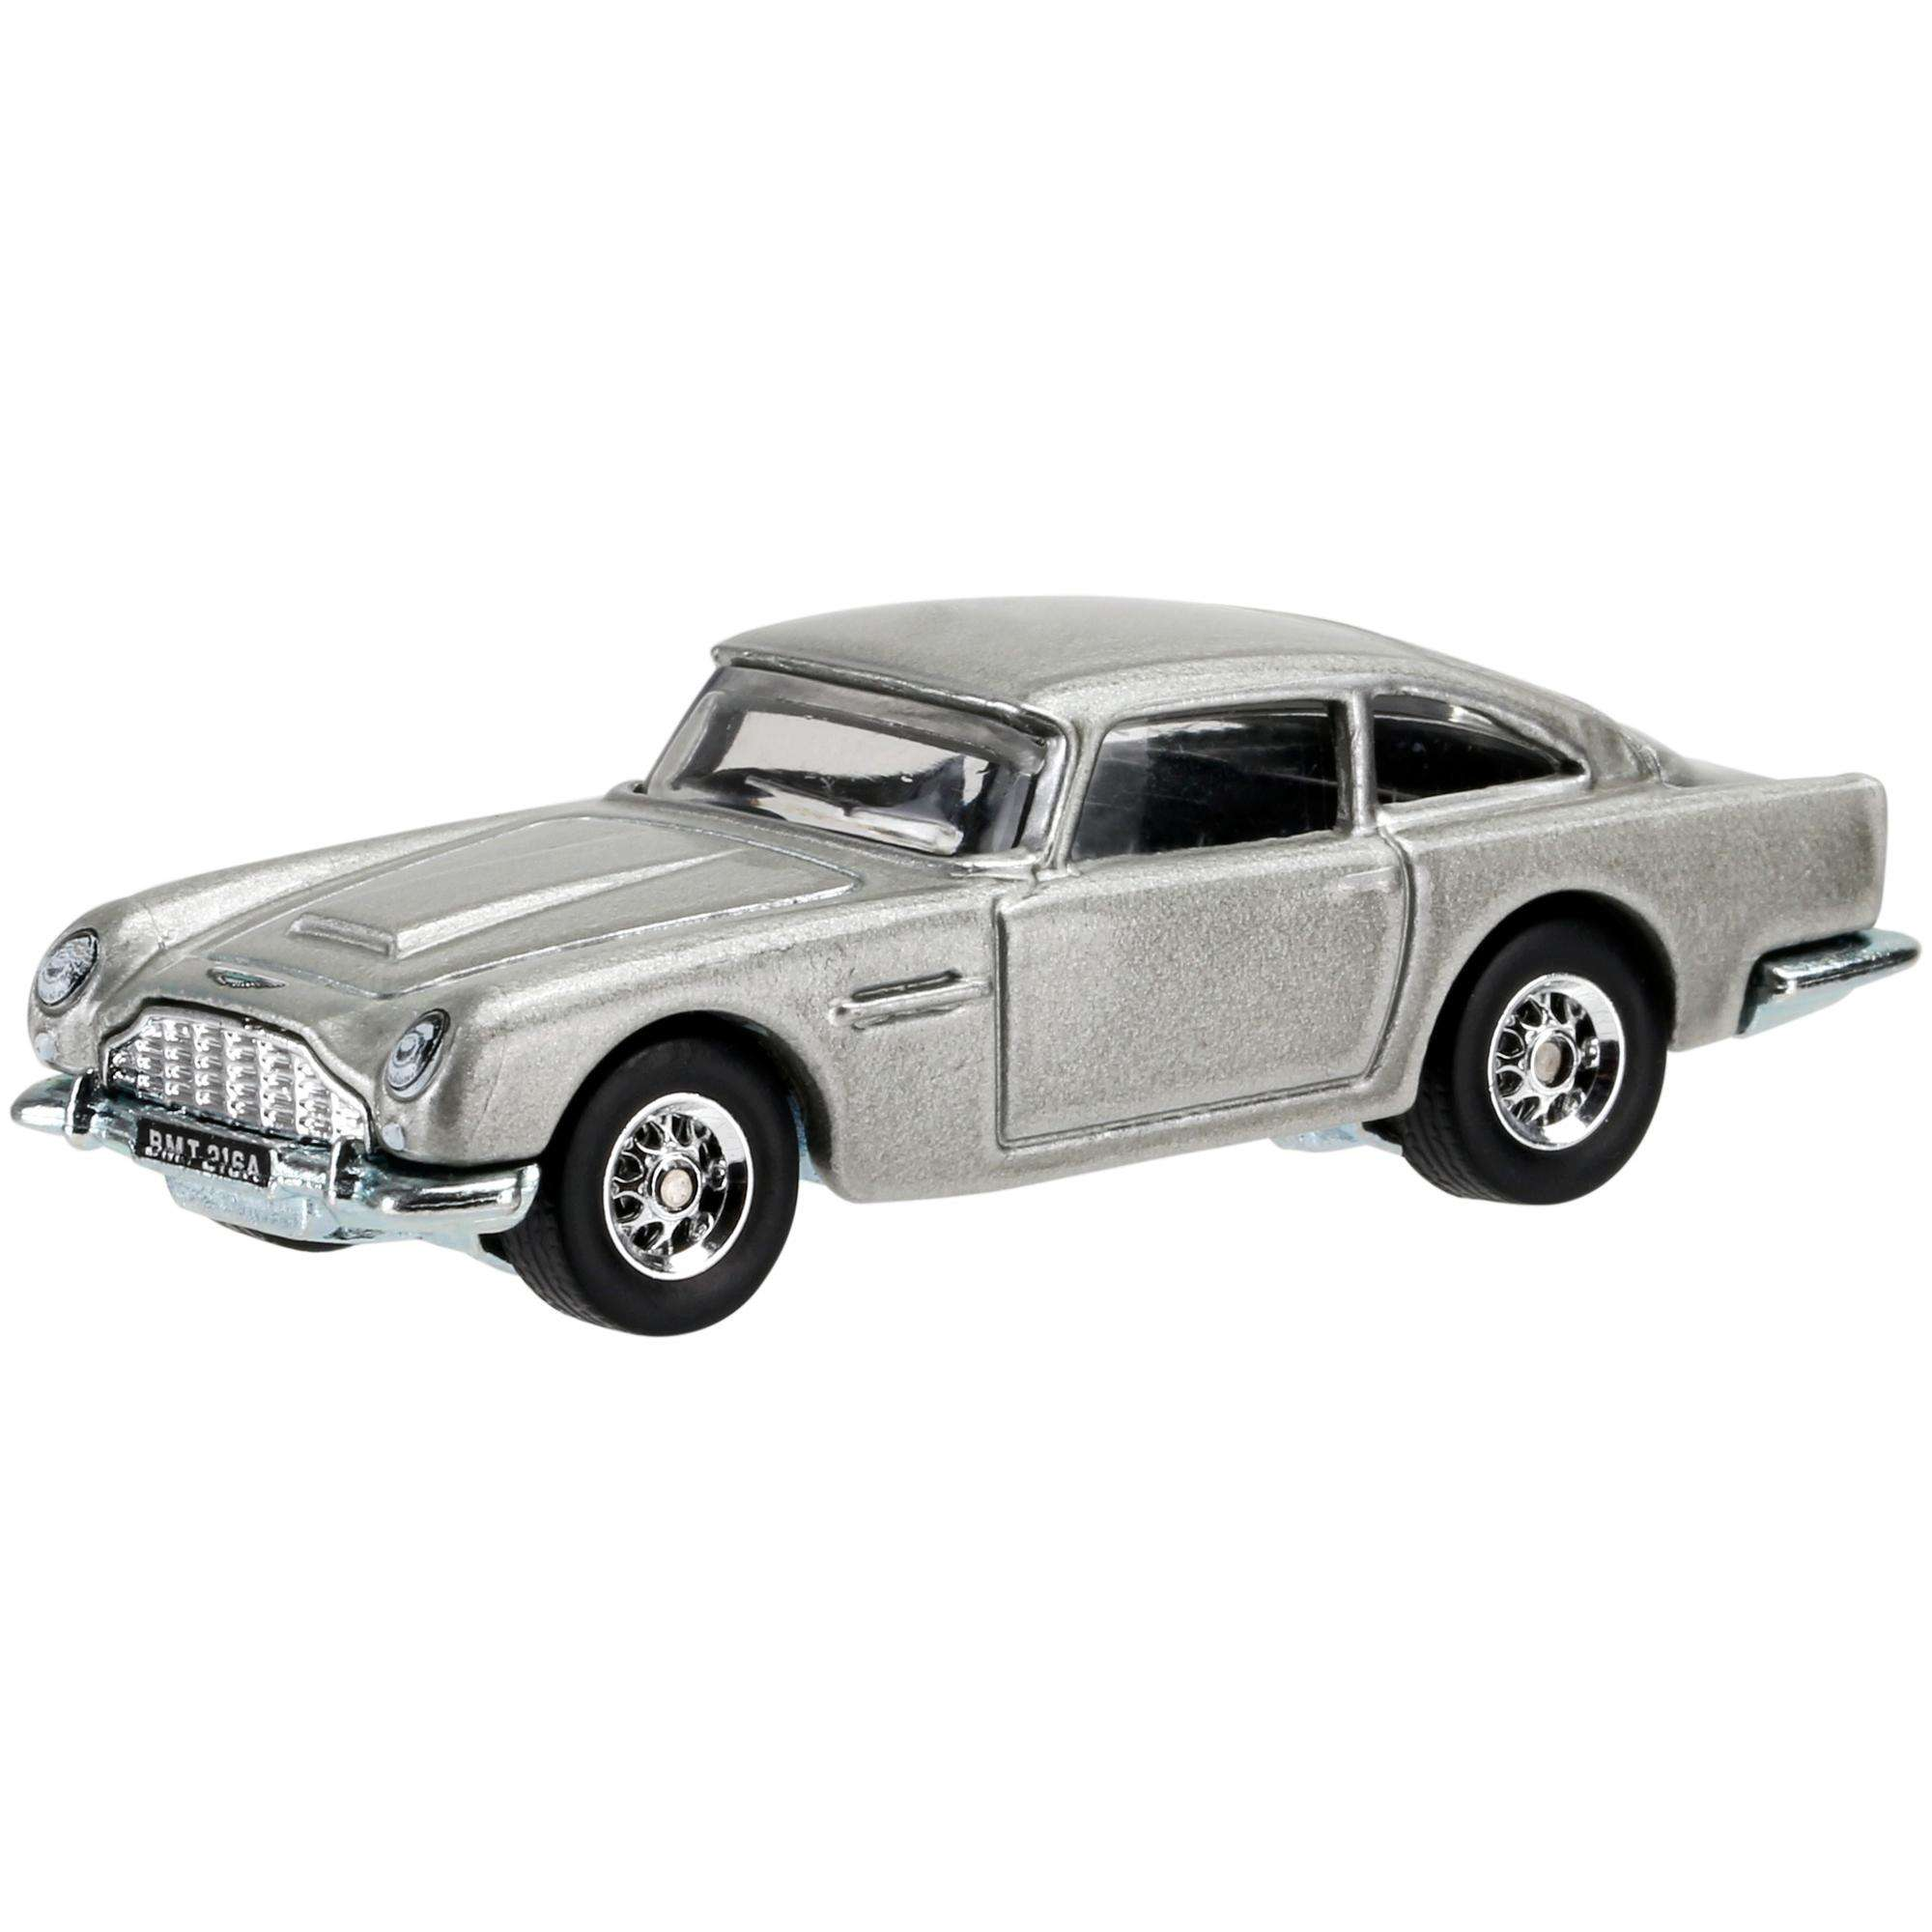 Hot Wheels Aston Martin DB5 by Mattel